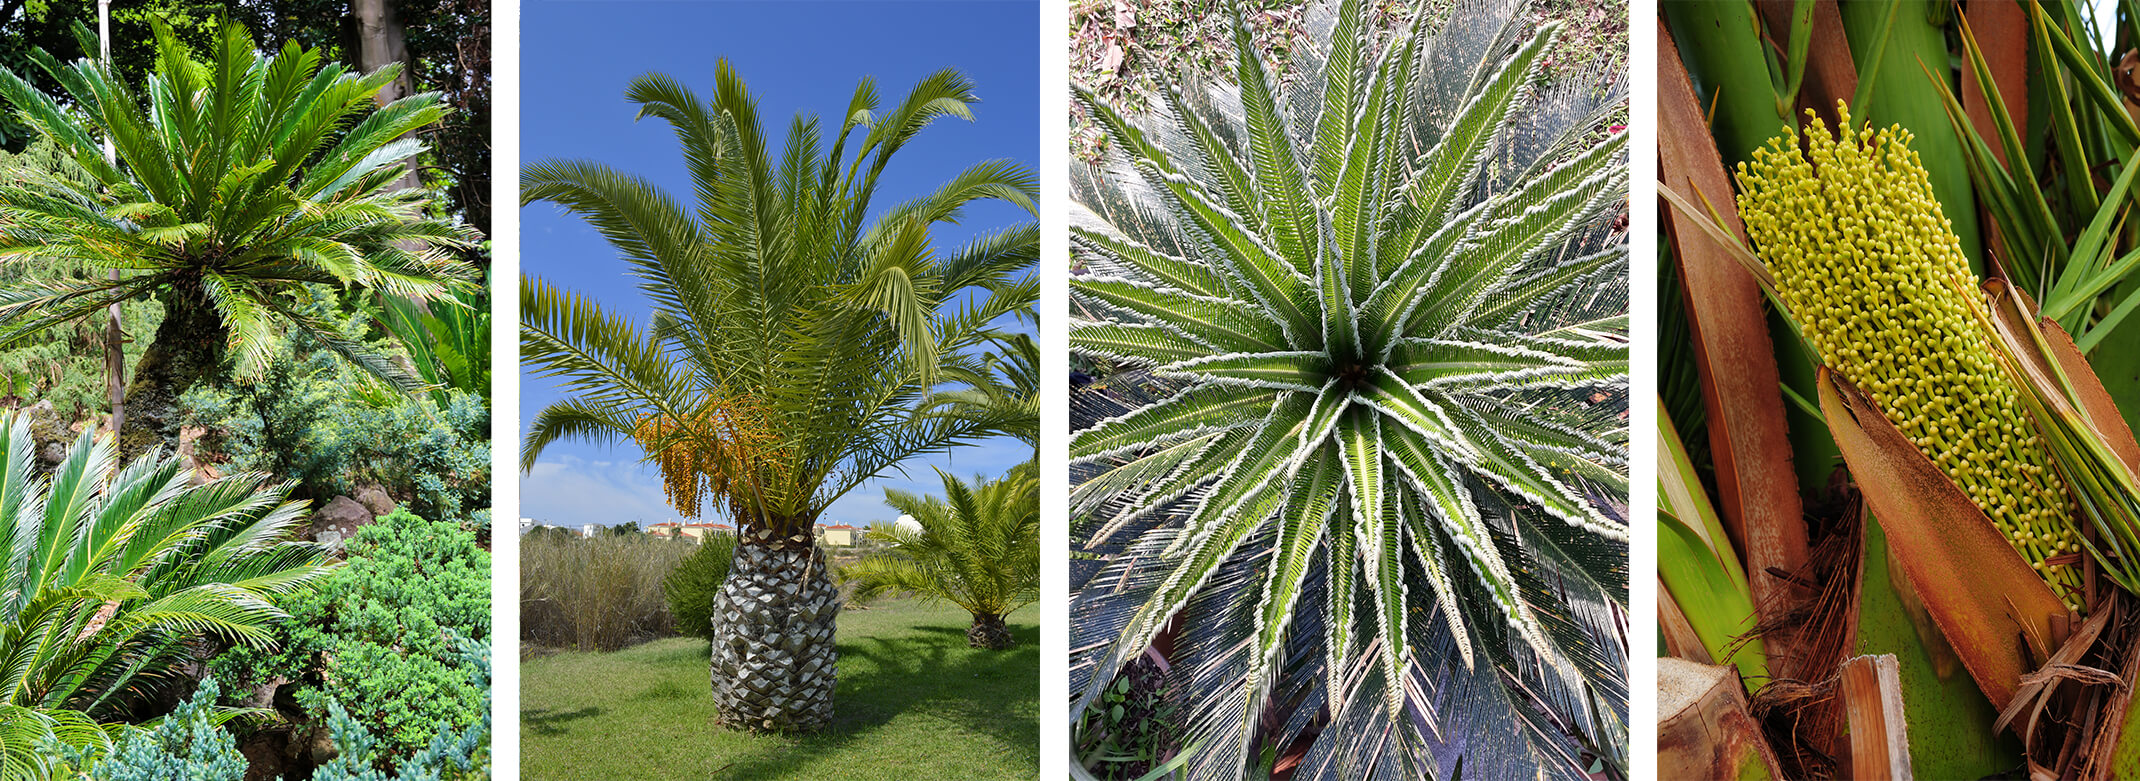 4 images of different palm tree varieties